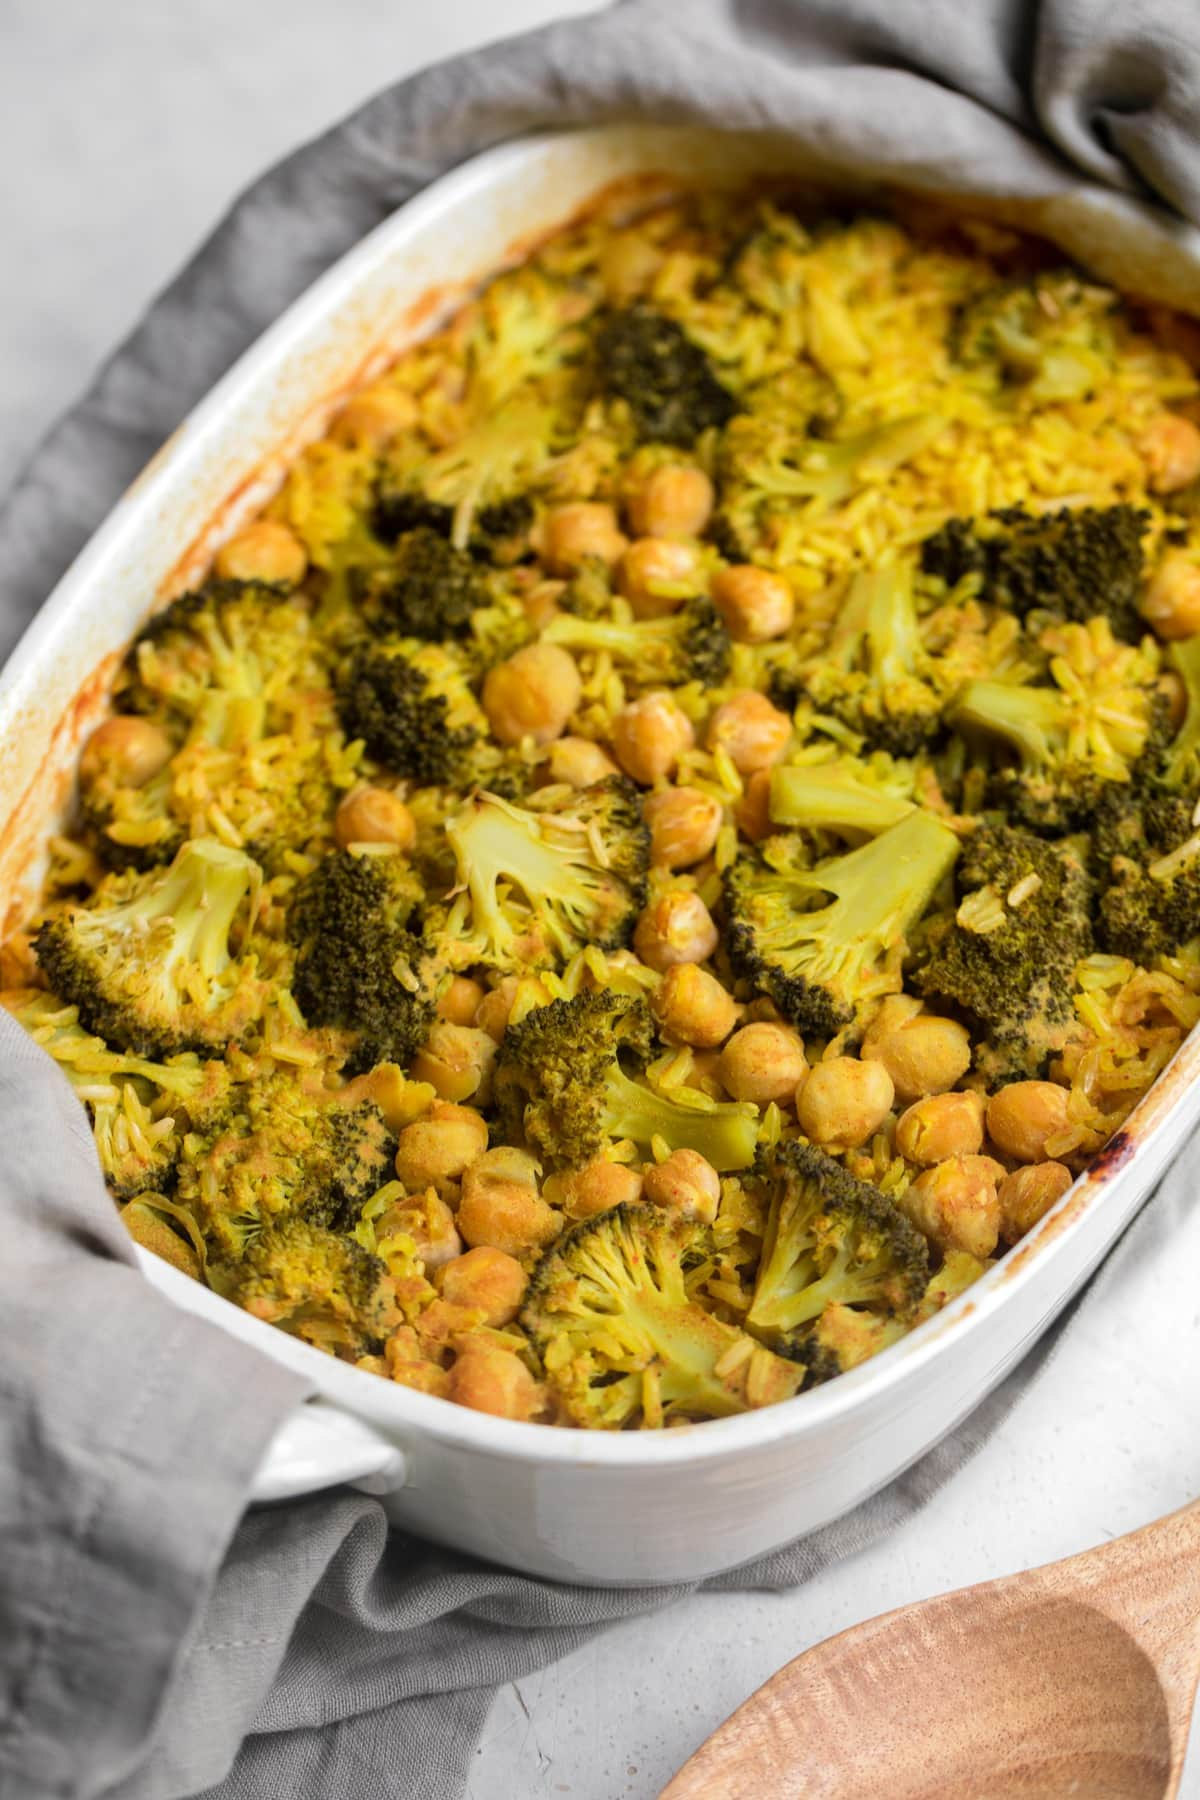 cooked broccoli rice casserole in white dish with grey towel